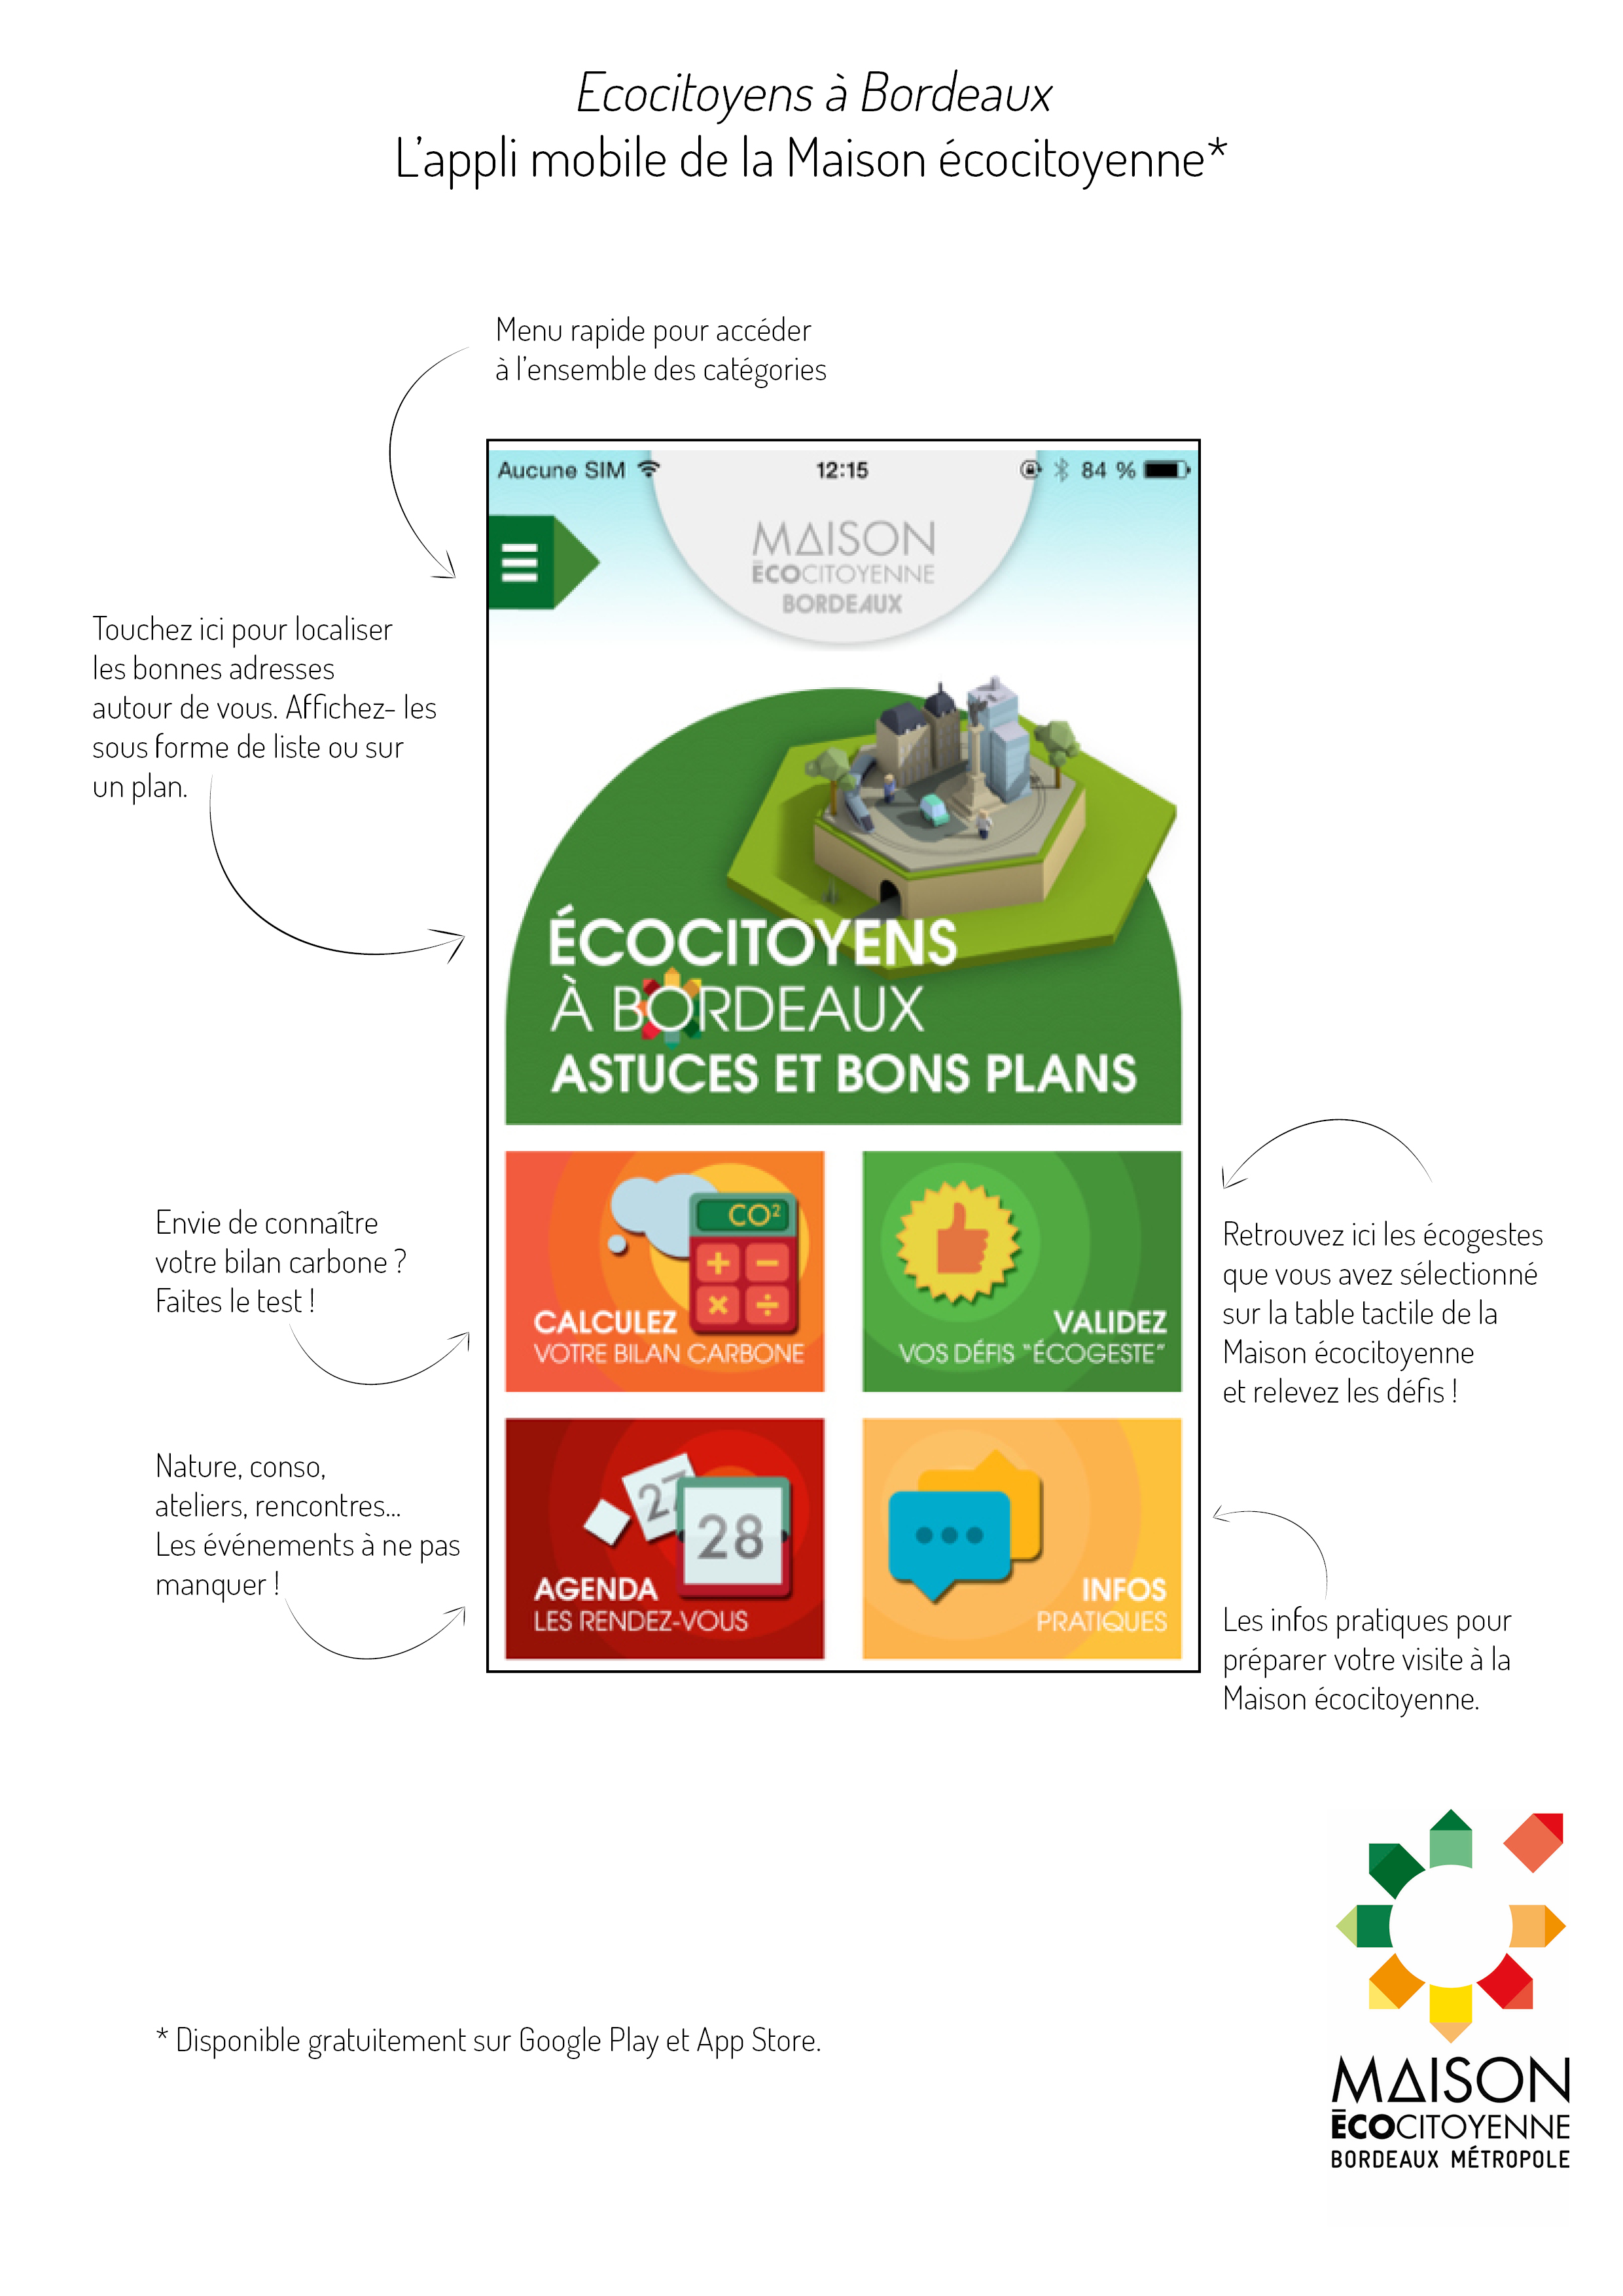 Comment utiliser l'application mobile de la Maison écocitoyenne